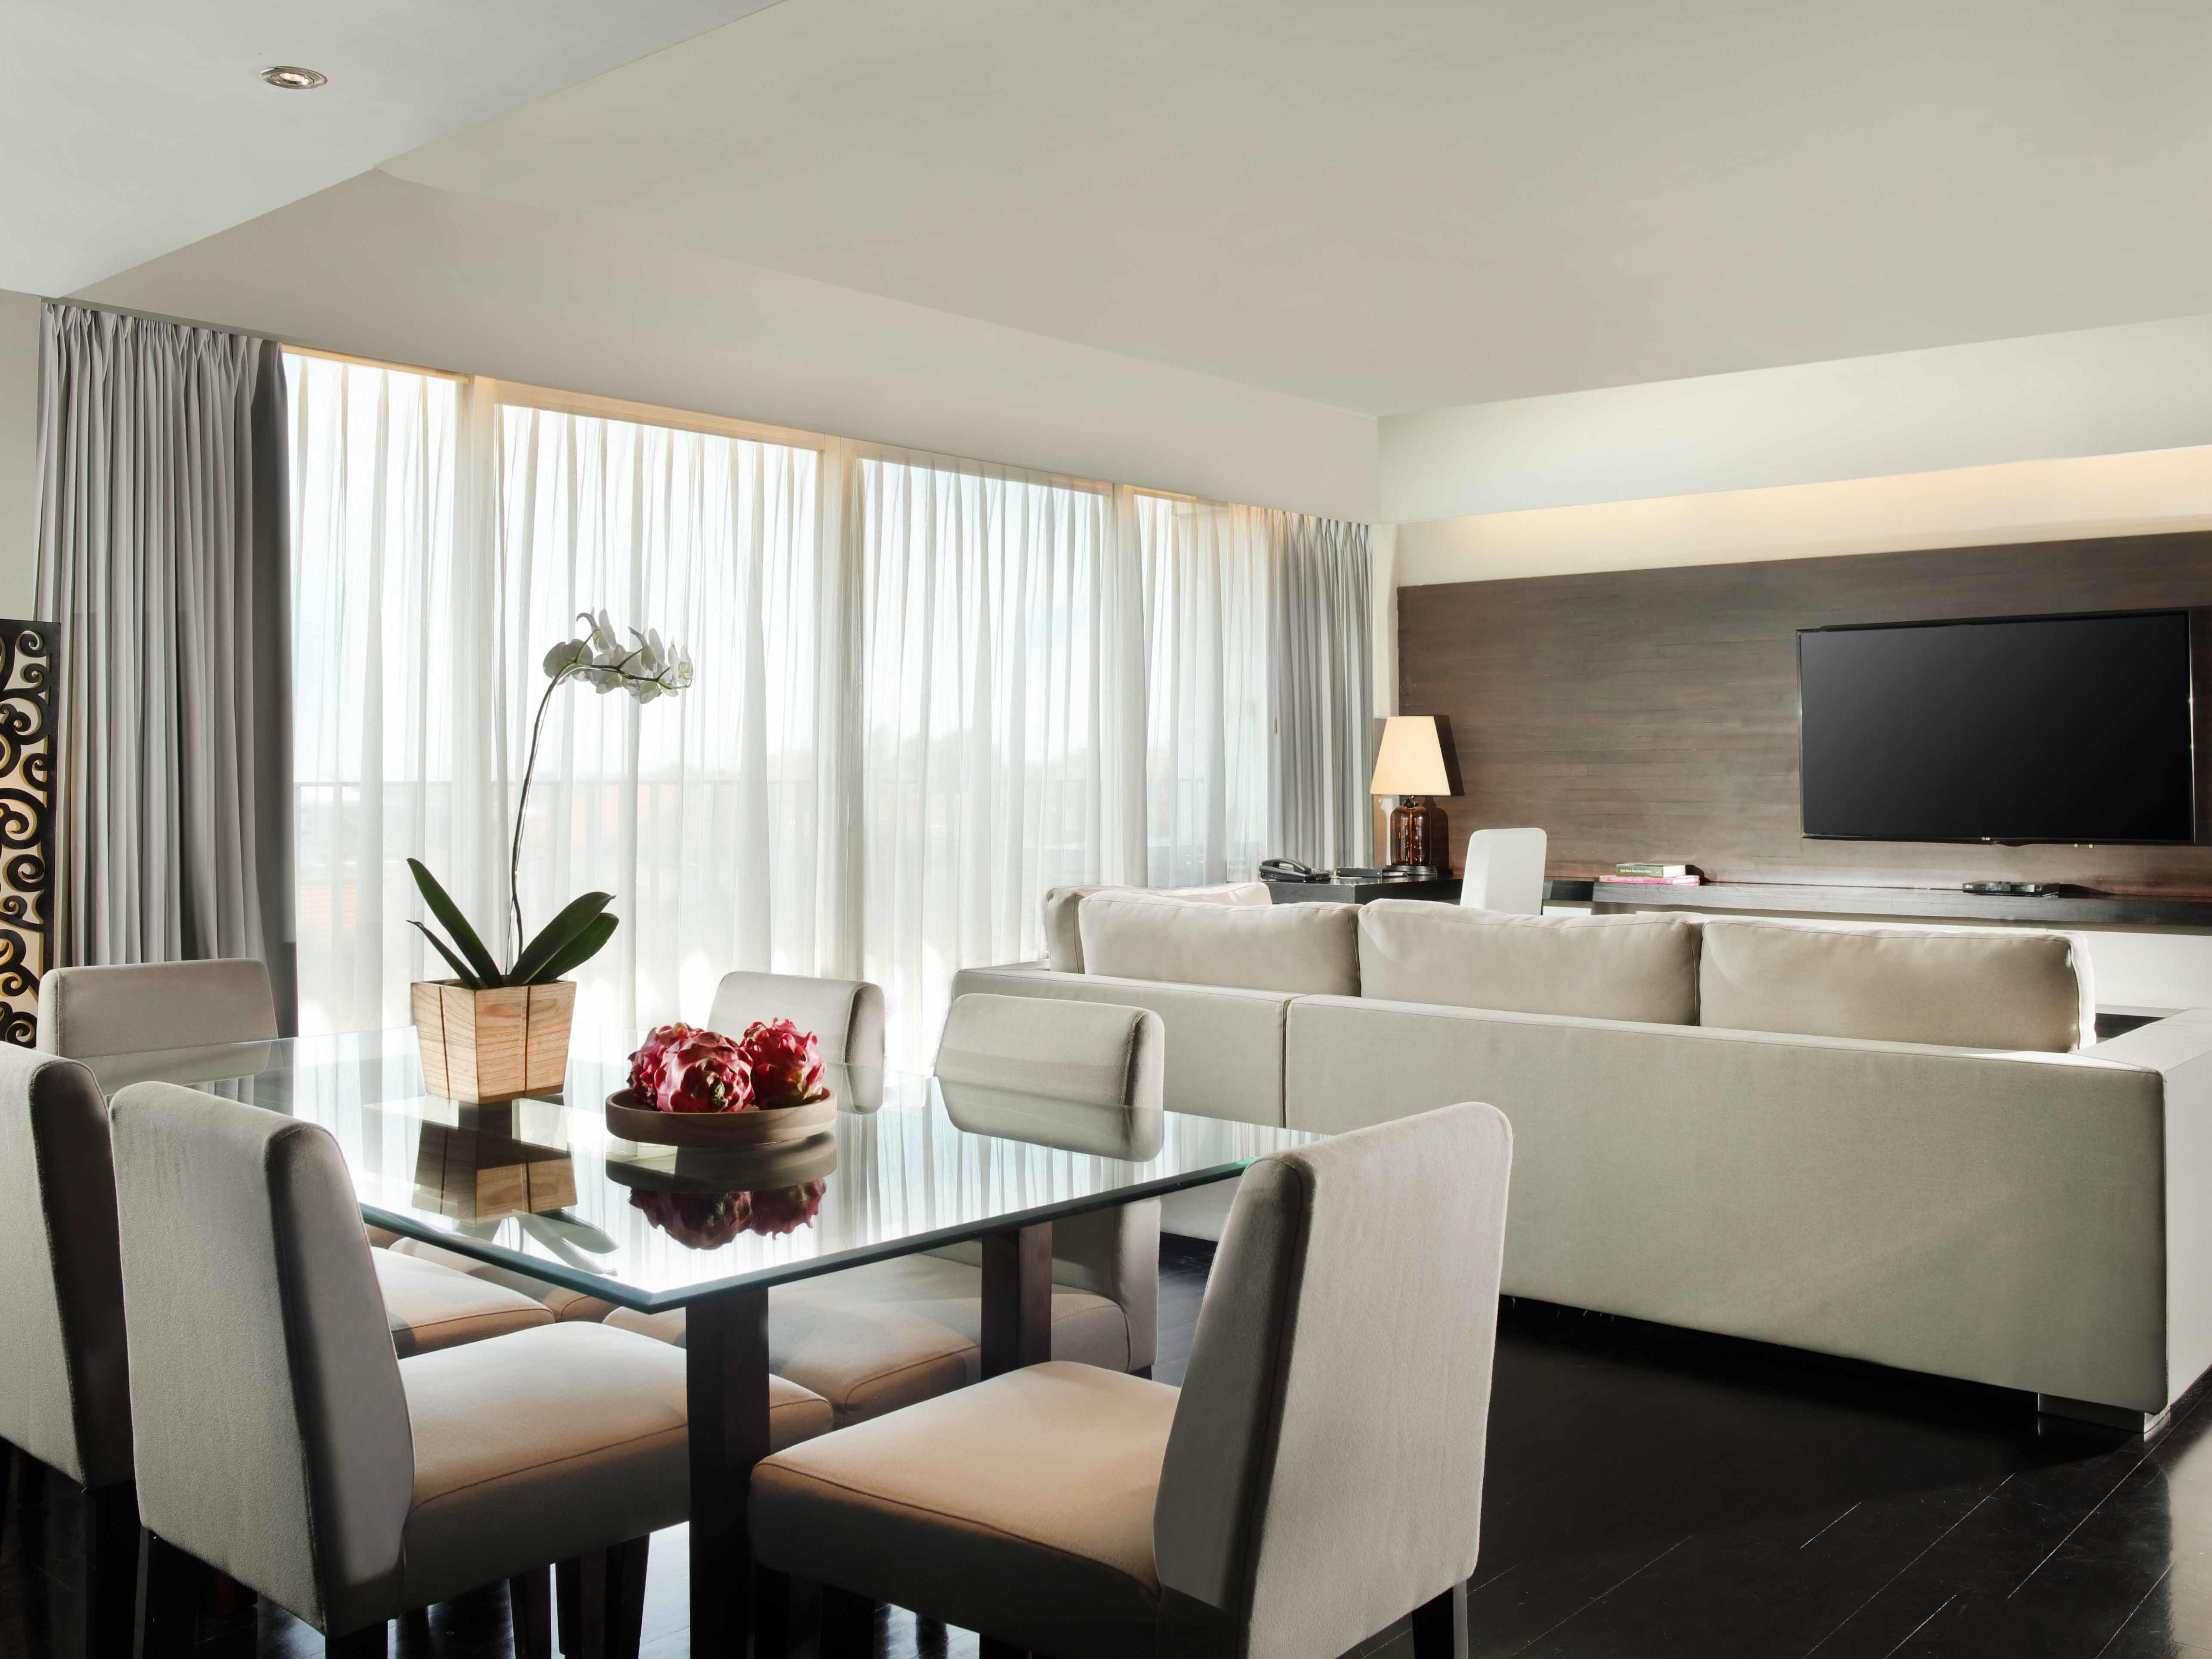 Penthouse at U Hotels and Resorts